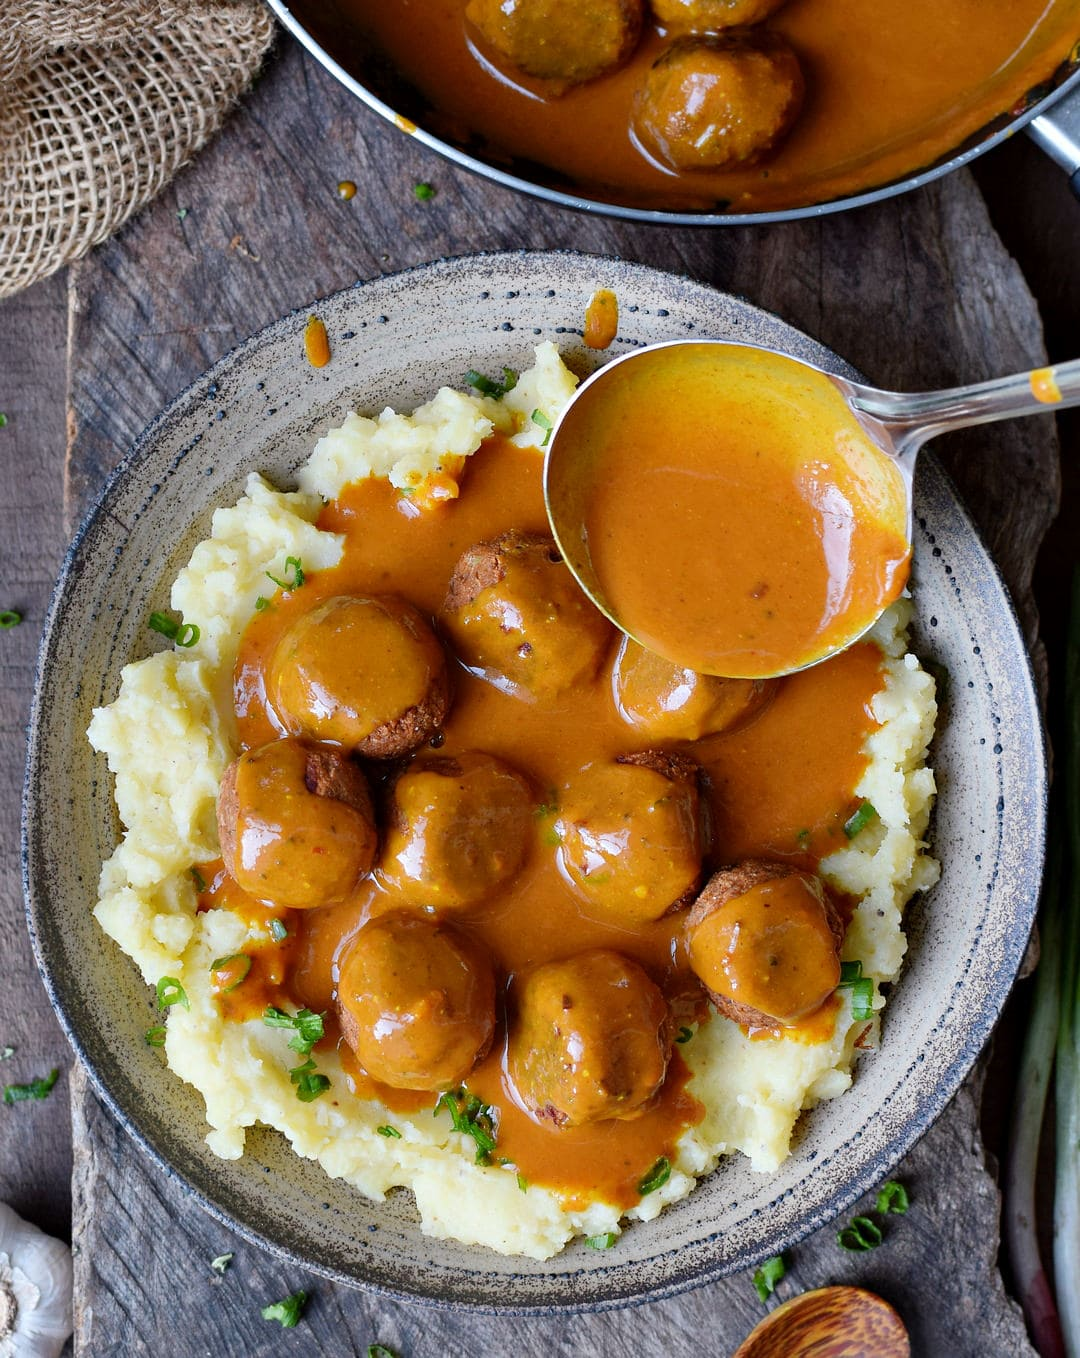 Vegan meatballs with hearty gravy in a ladle over mashed potatoes